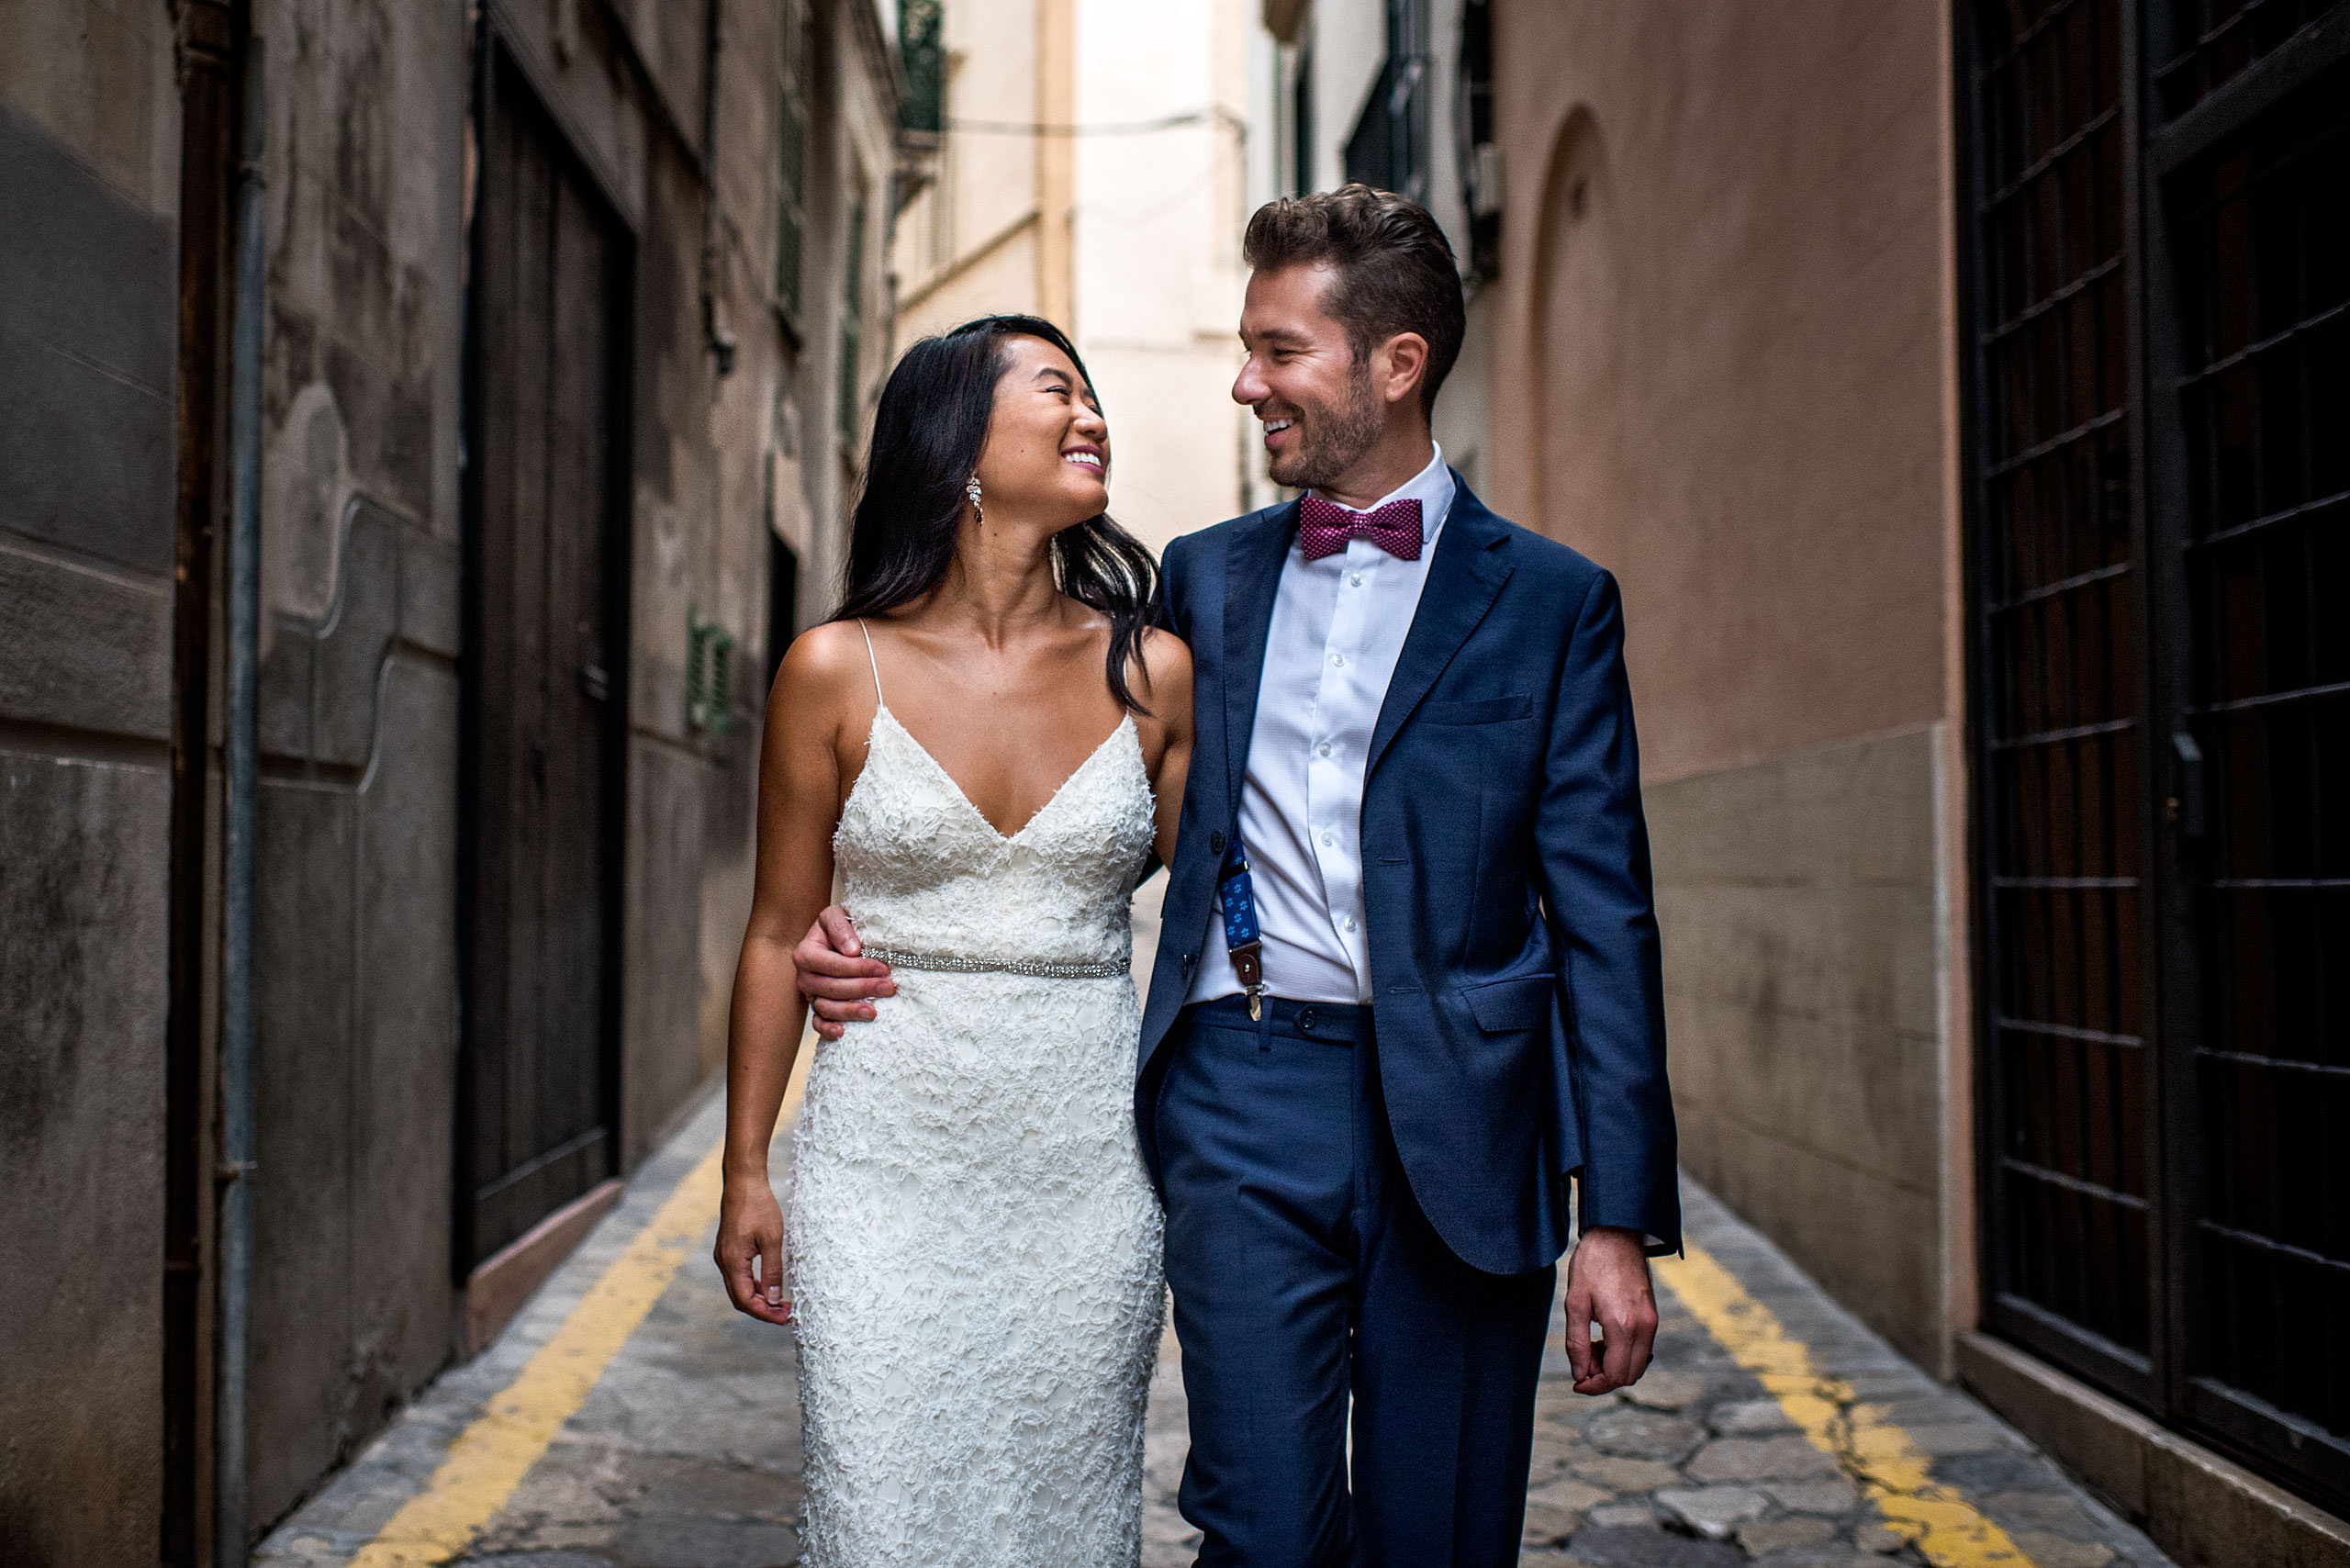 a bride and groom walking down an alleyway with their arms around each other at castillo hotel son vida destination wedding by sean leblanc